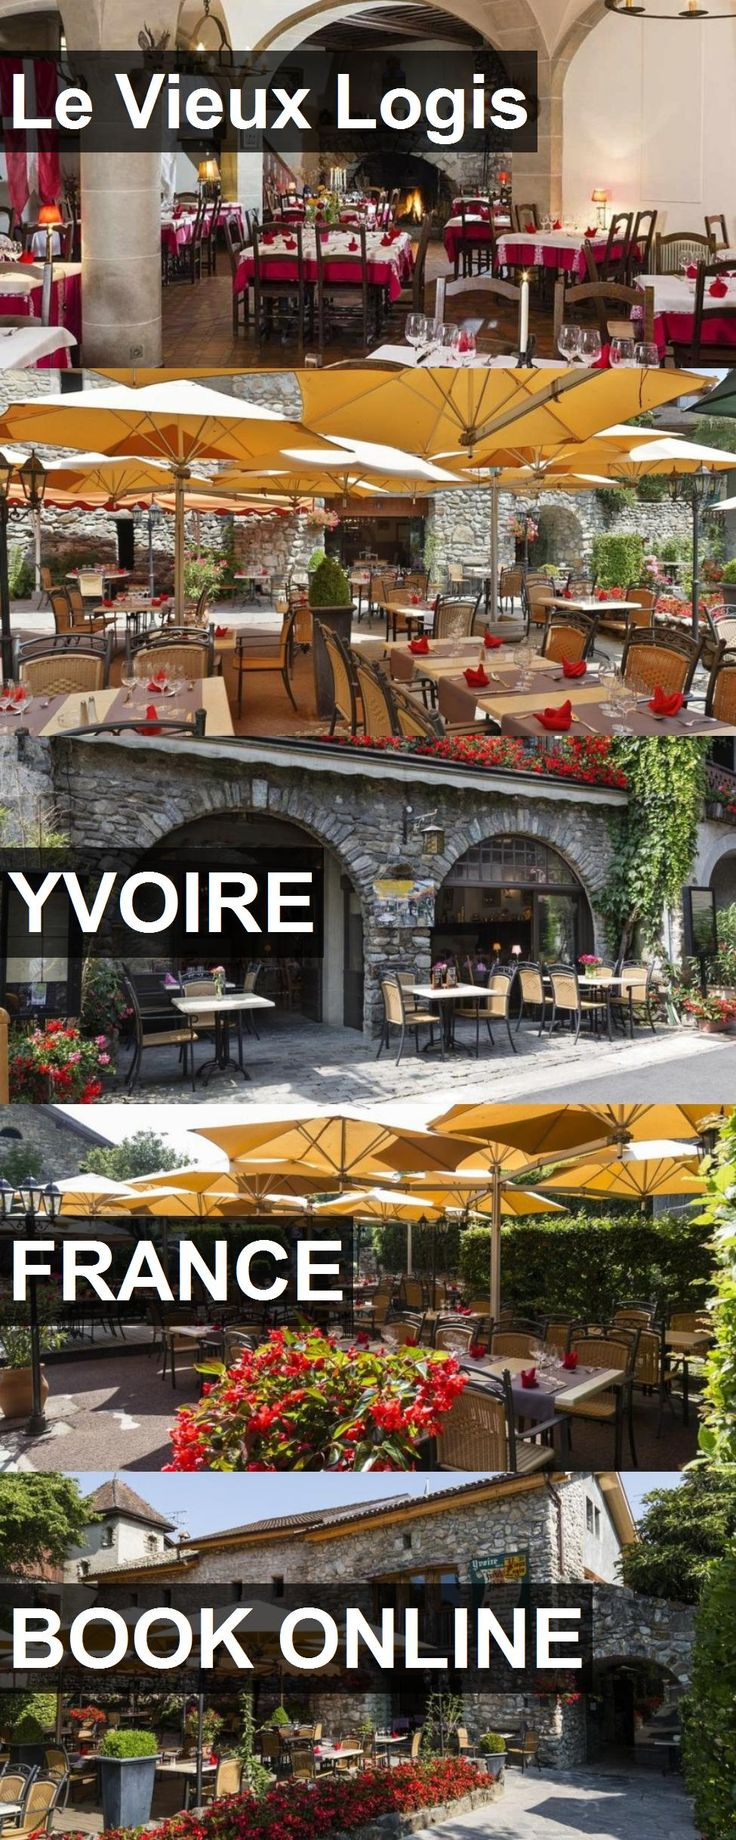 Hotel Le Vieux Logis in Yvoire, France. For more information, photos, reviews and best prices please follow the link. #France #Yvoire #travel #vacation #hotel